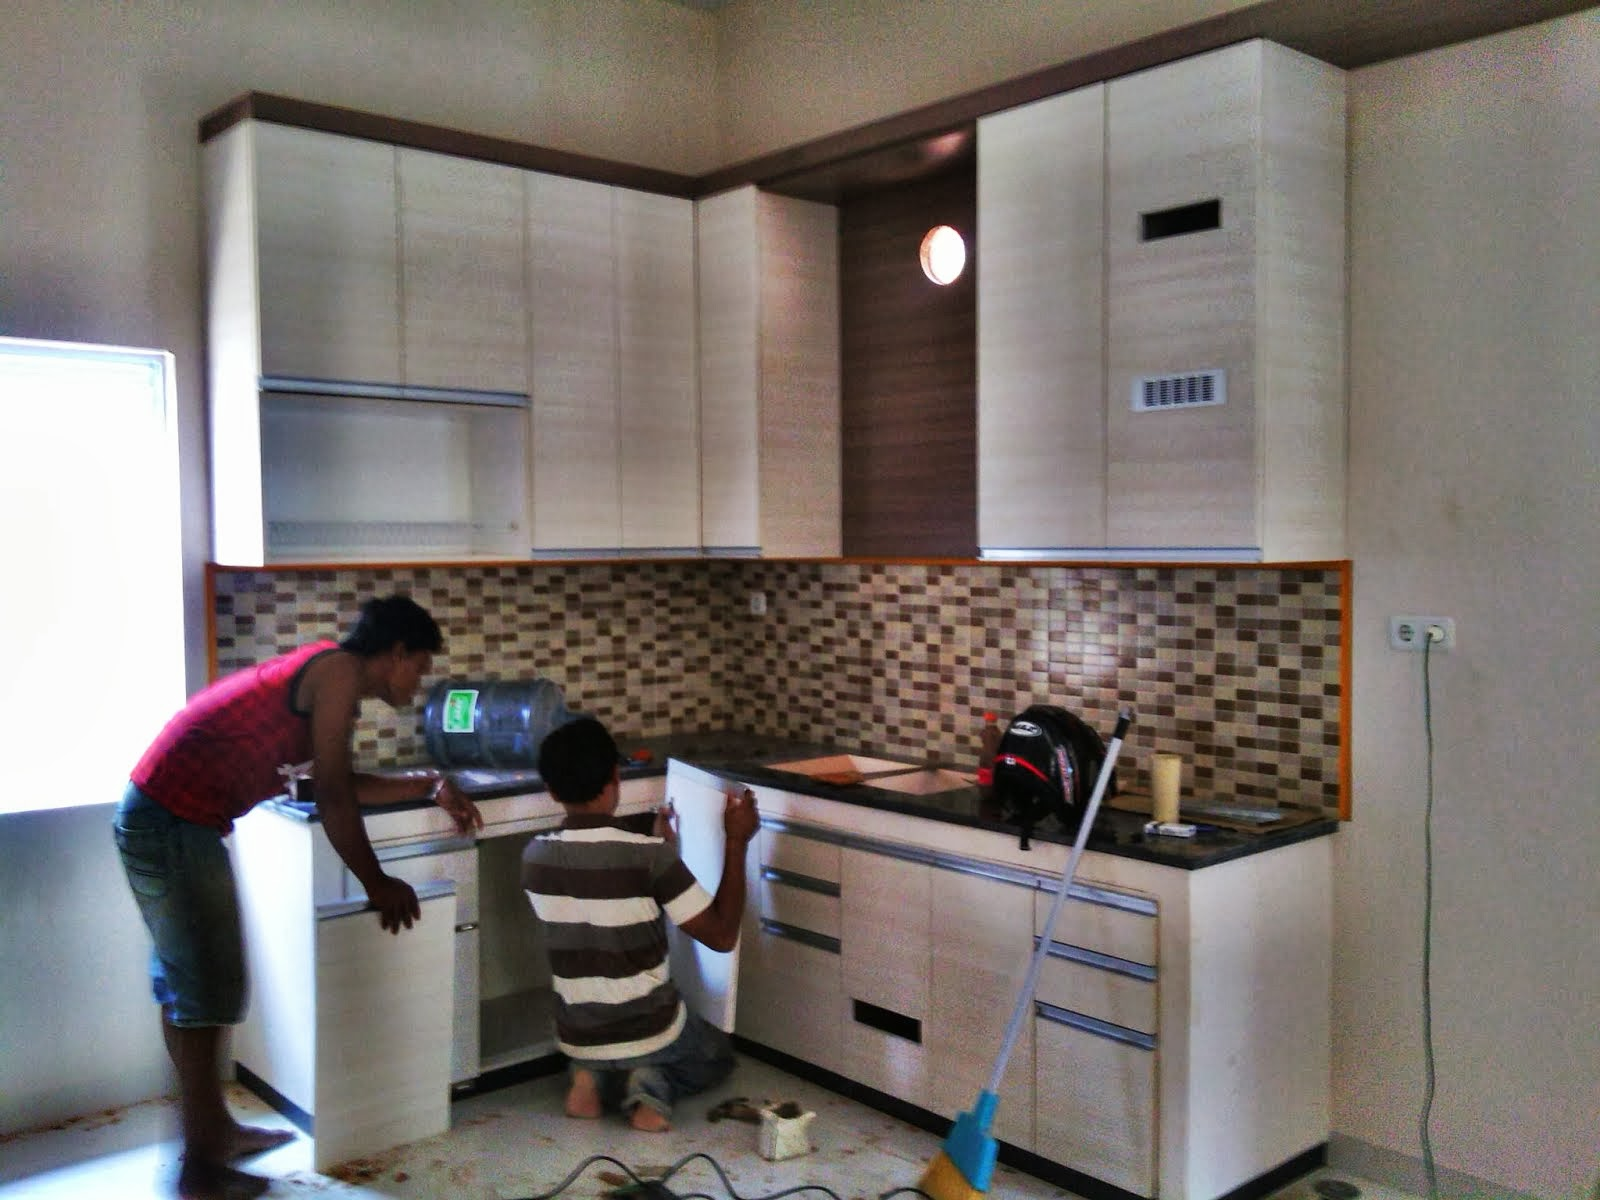 Tfq architects pemasangan kitchen set dijalan sampurna for Pemasangan kitchen set